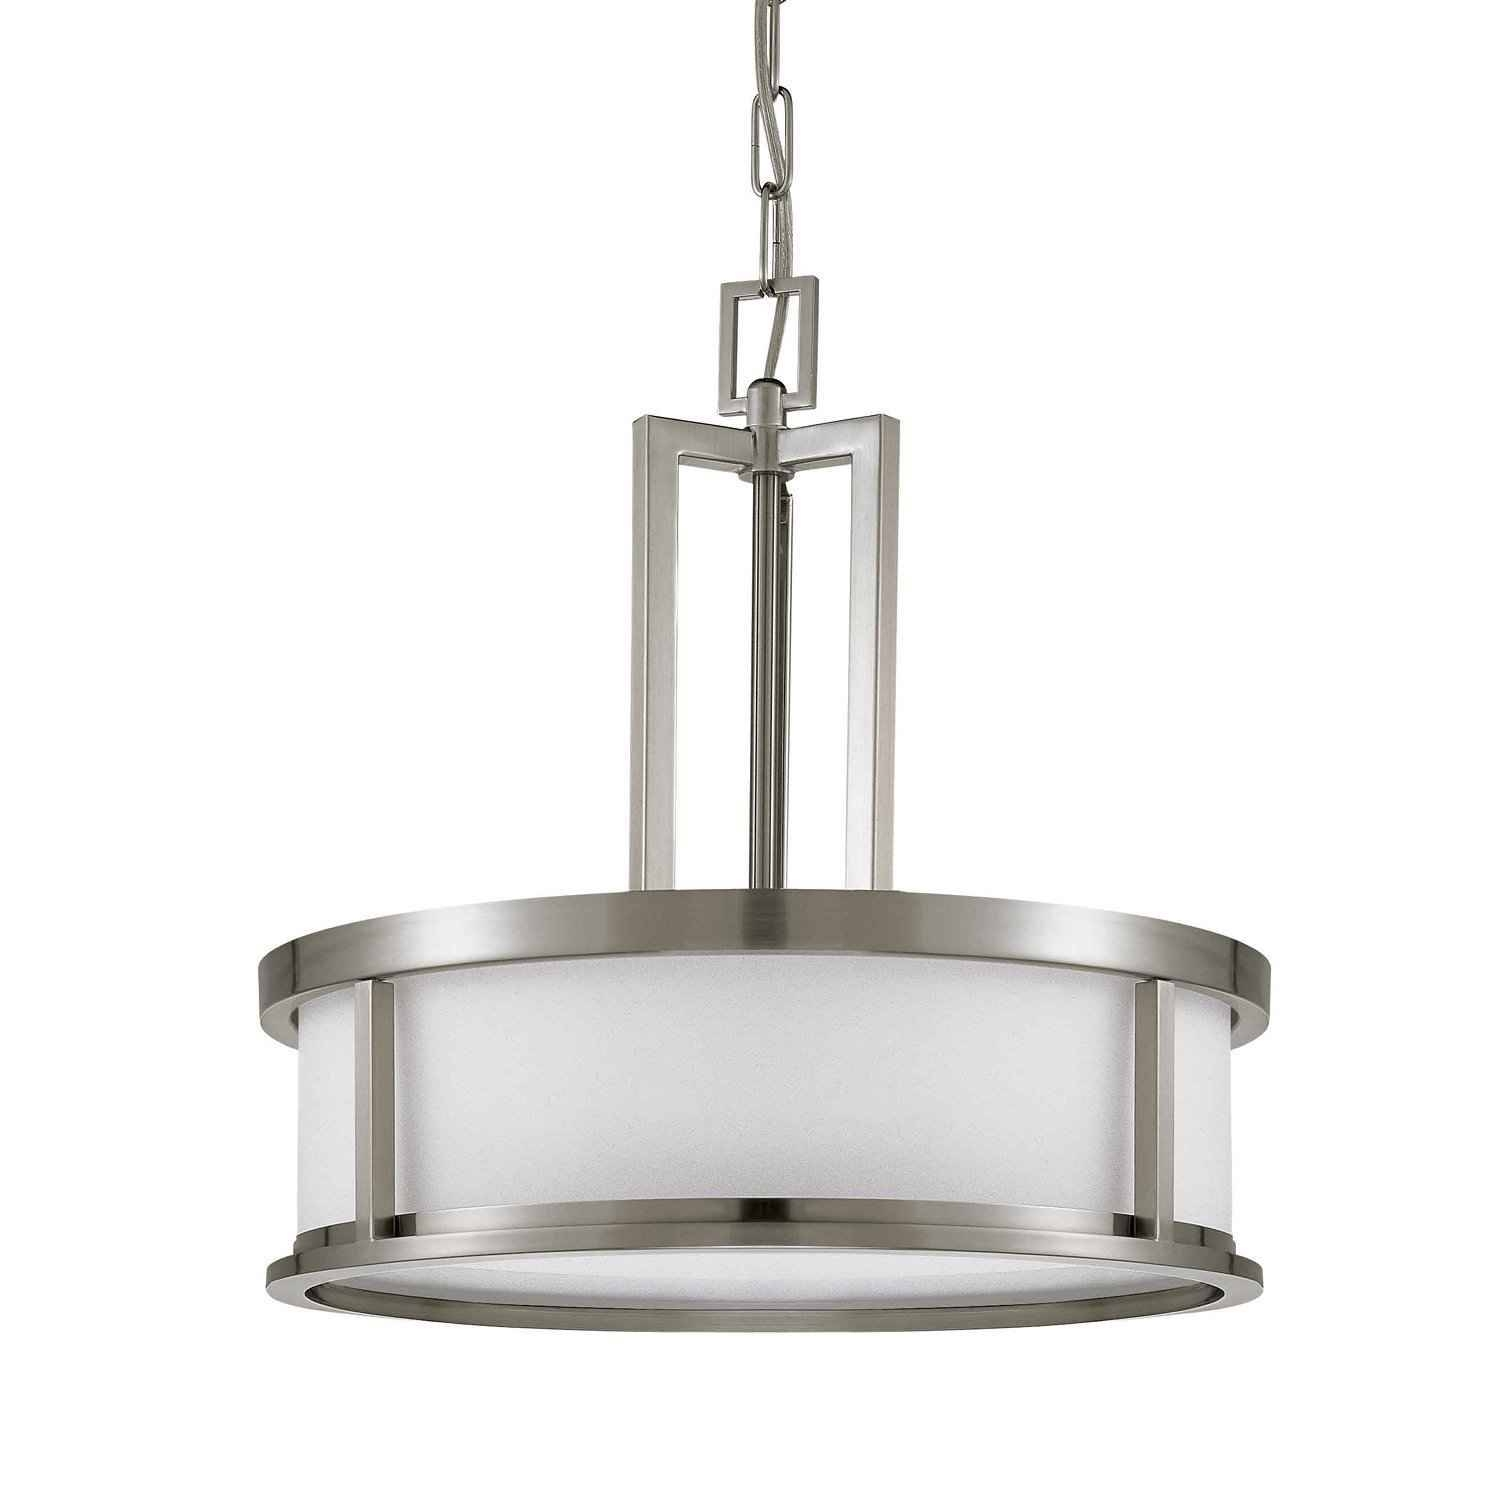 New Stainless Steel Pendant Light Fixtures 76 About Remodel regarding Stainless Steel Pendant Lights Fixtures (Image 6 of 15)